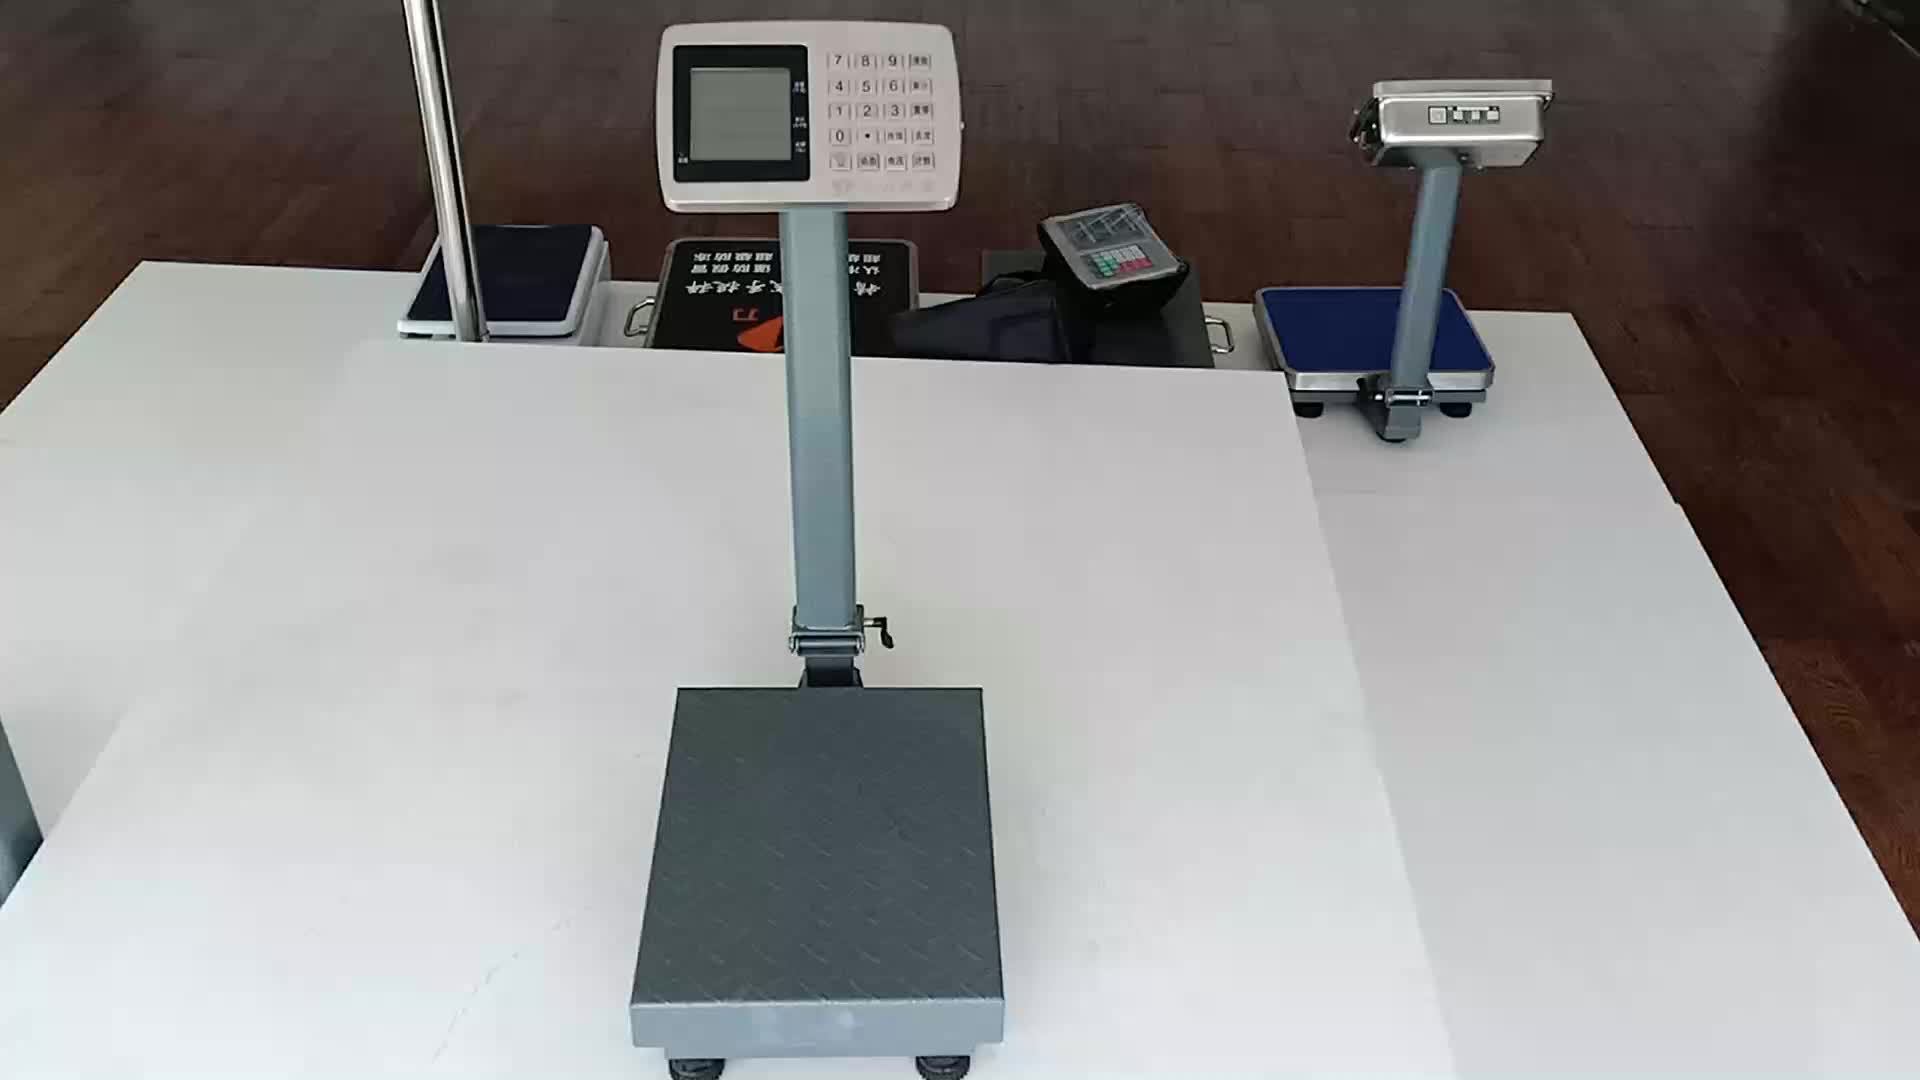 Digital Commercial Price platform weighing scale